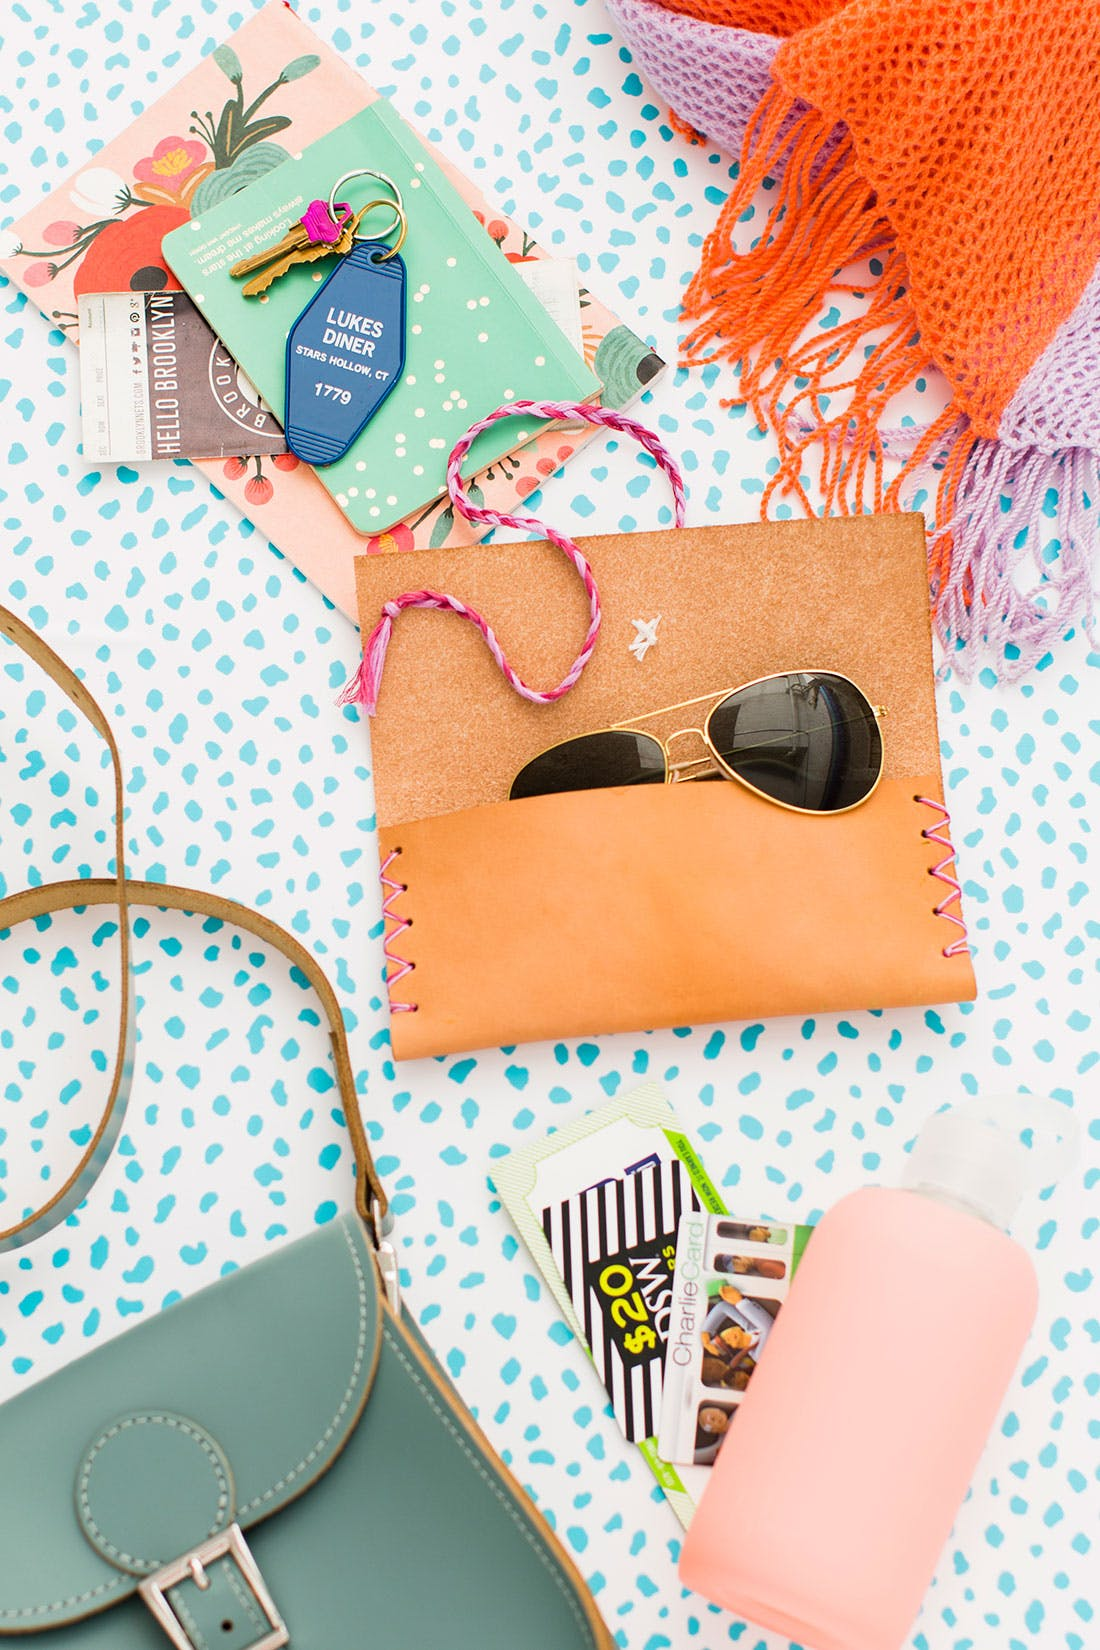 50 Easy Handmade Gift Ideas You'll Love: DIY Leather Sunglass Case from Brit & Co